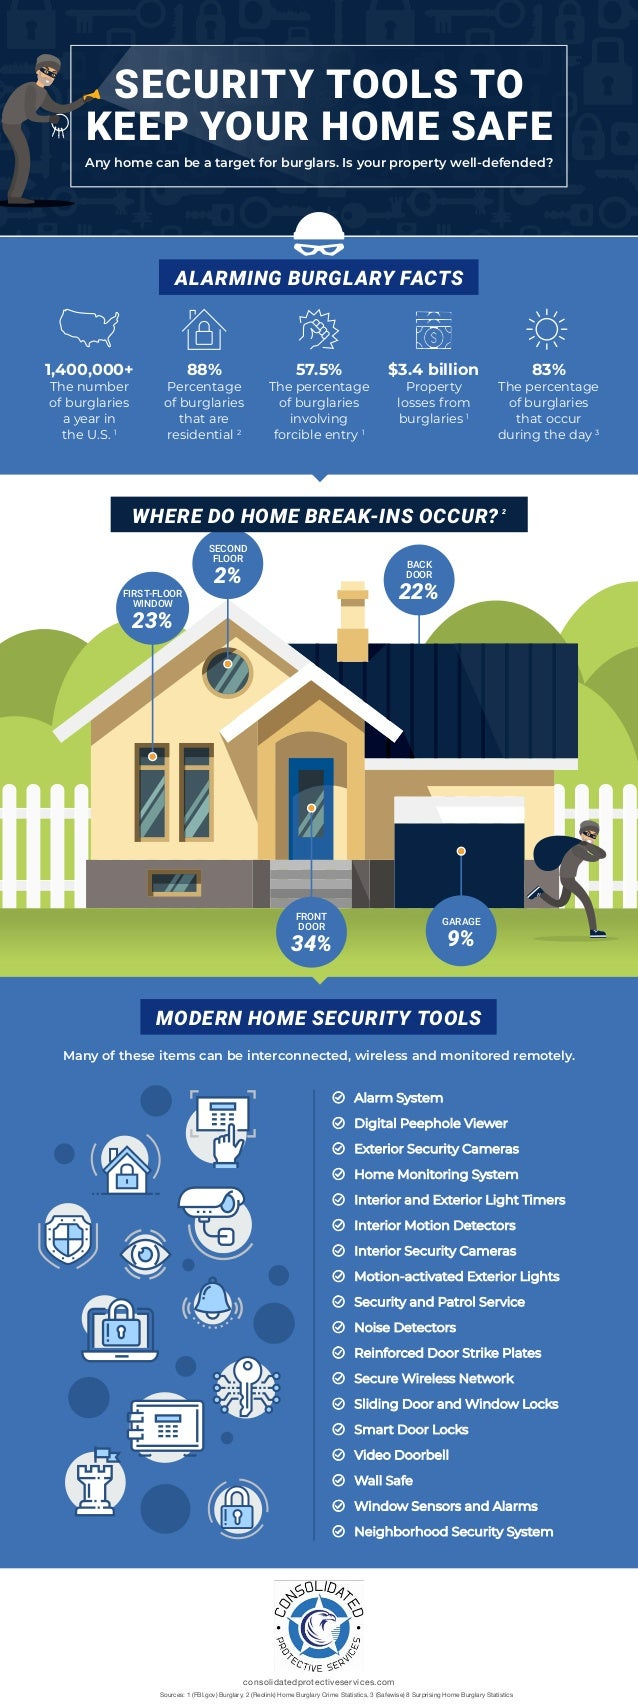 Home Burglary Prevention Tips, home security, burglary protection, home security systems, burglary prevention